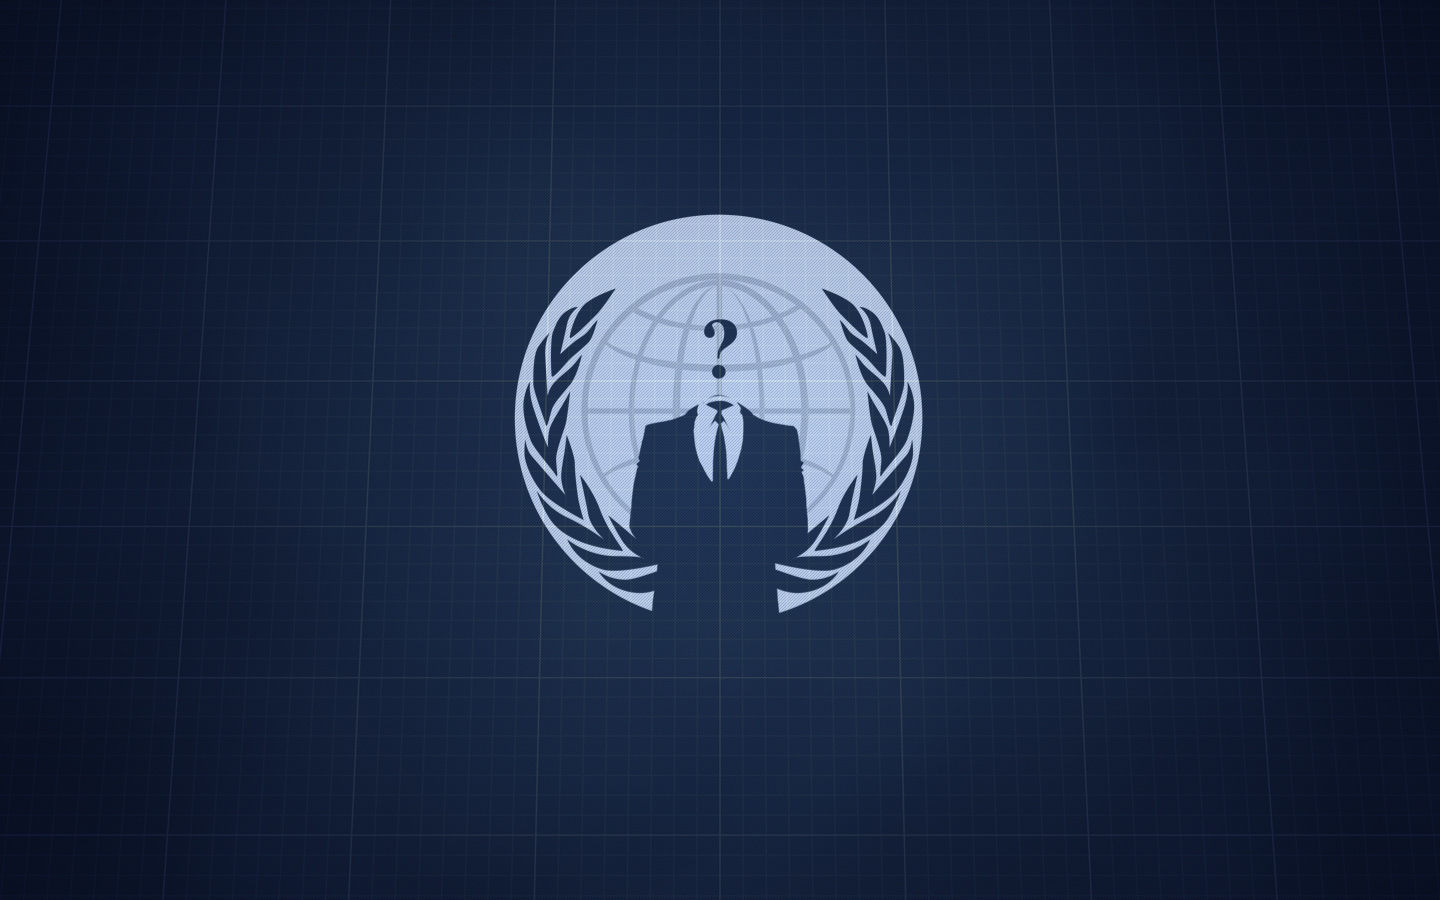 Anonymous hacker group propaganda